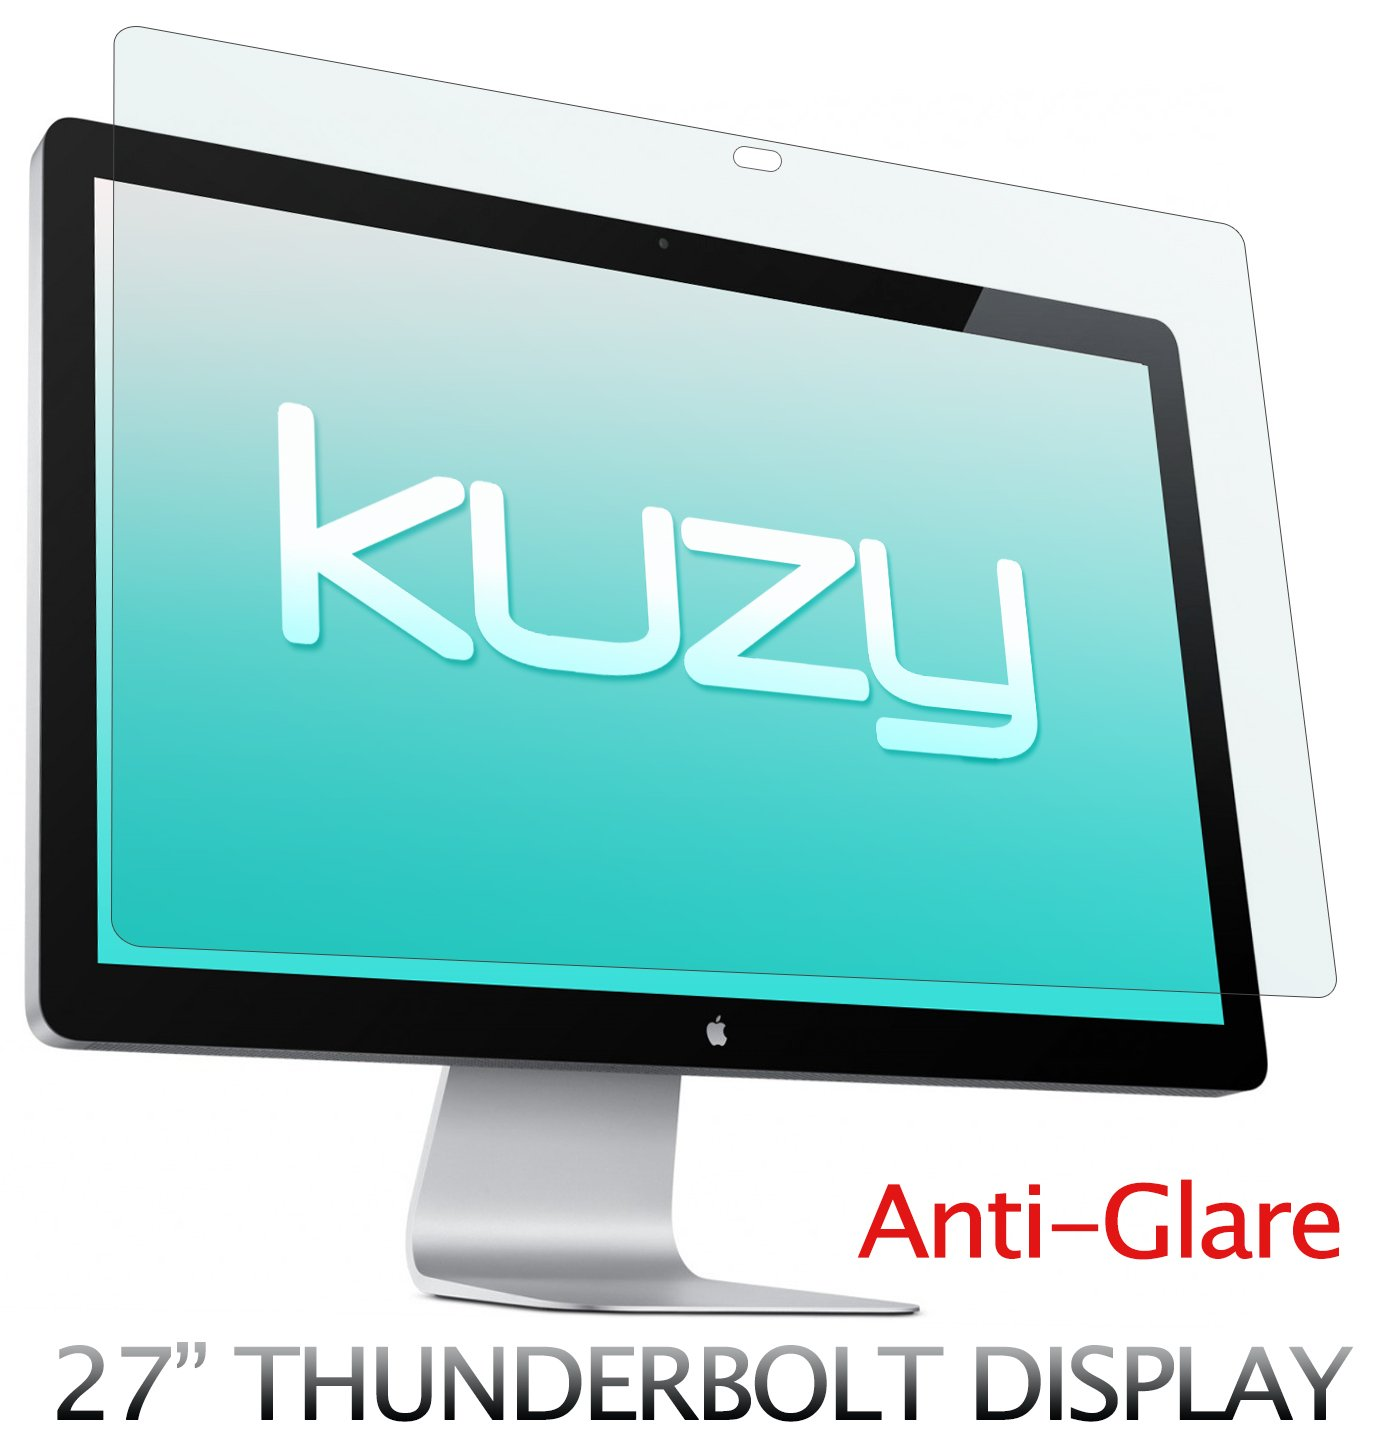 Kuzy - Anti-Glare Matte Screen Protector Filter for 27 inch Apple Thunderbolt and/or Cinema Display 27'' Model A1407 and A1316 - ANTI-GLARE by Kuzy